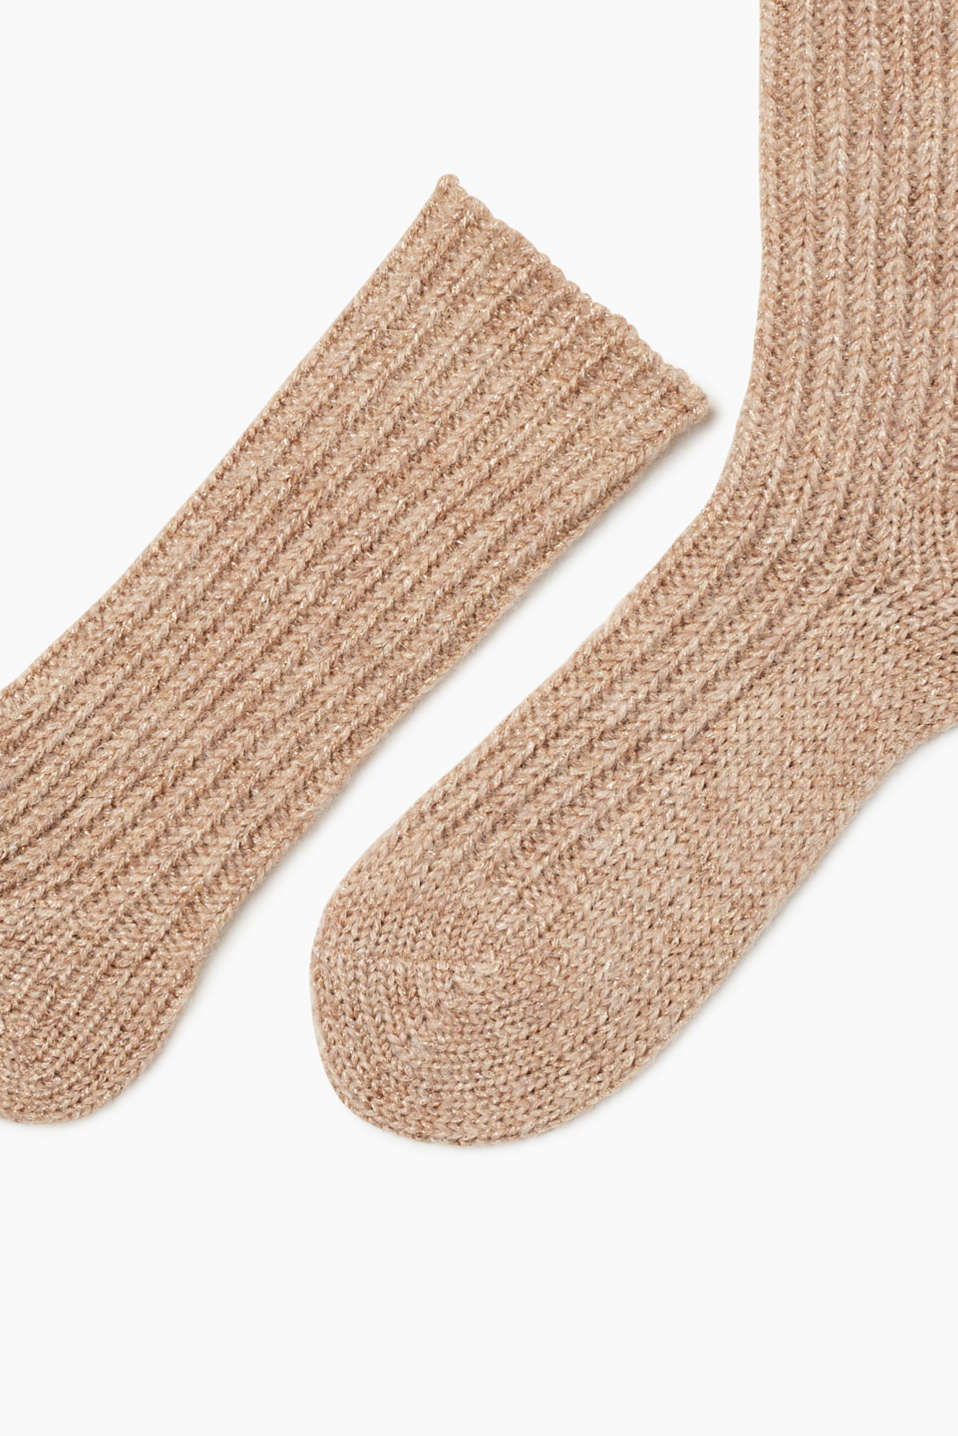 Thick glittery socks with mohair and wool, CAFE LATE, detail image number 1